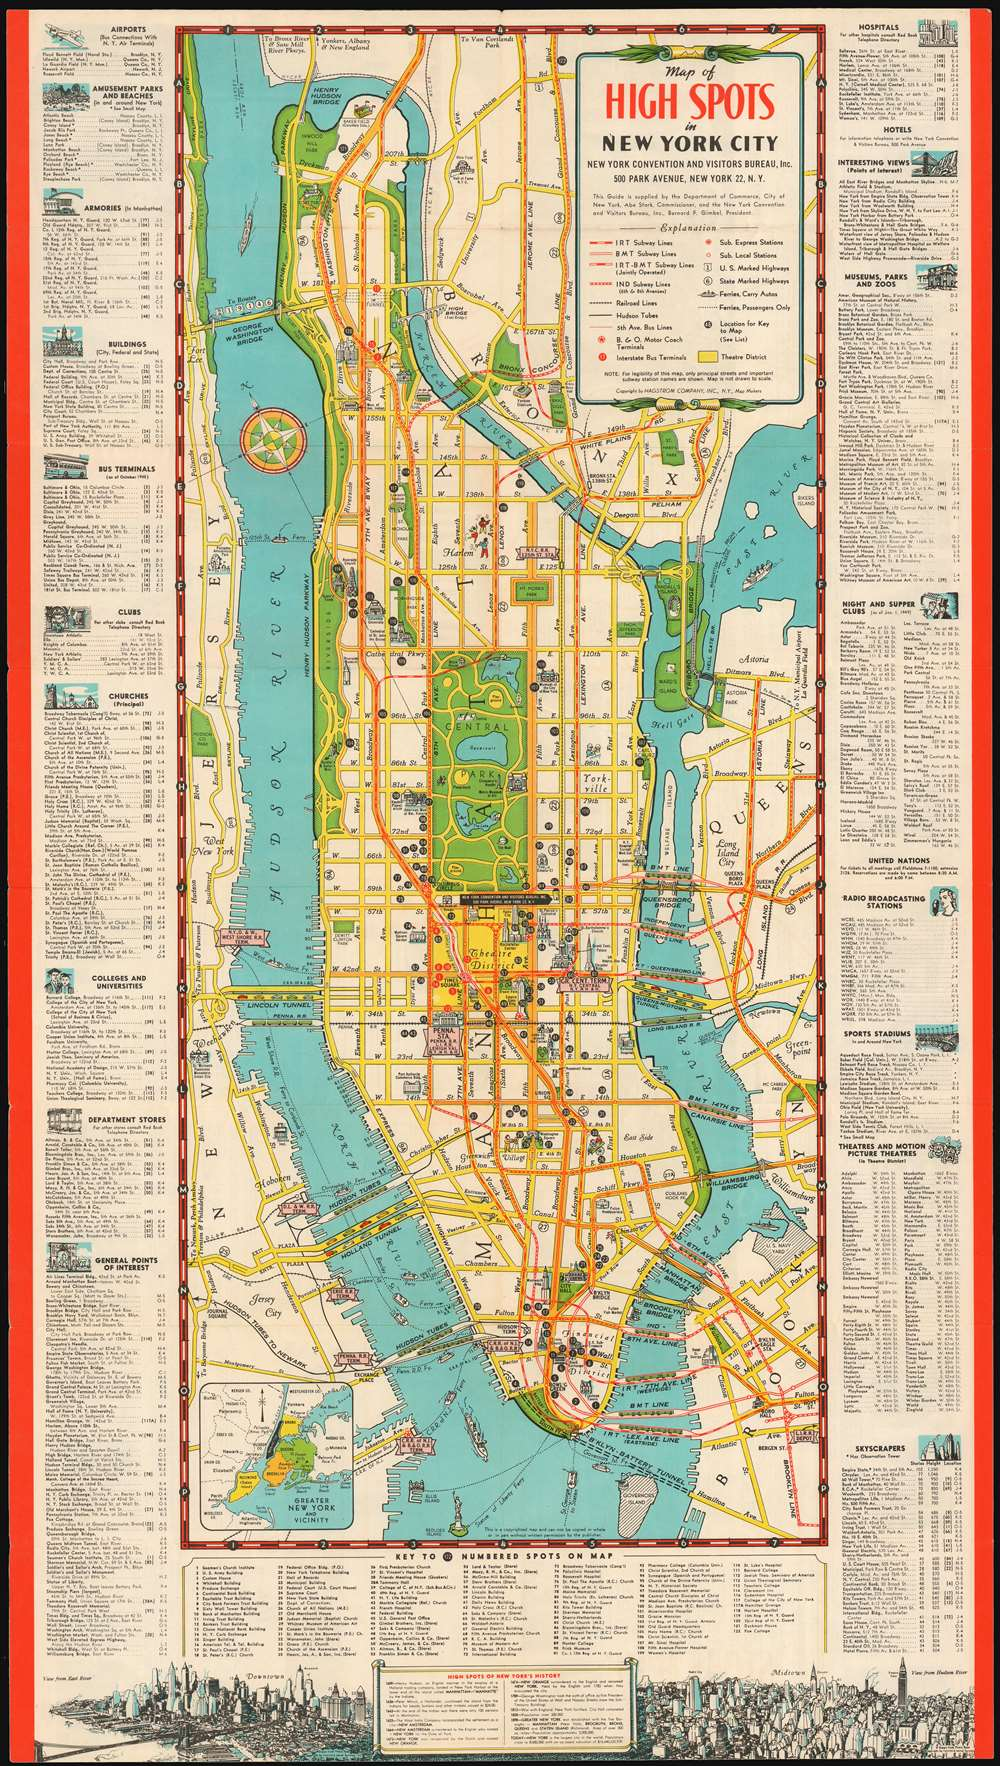 Map Of High Spots In New York City Geographicus Rare Antique Maps